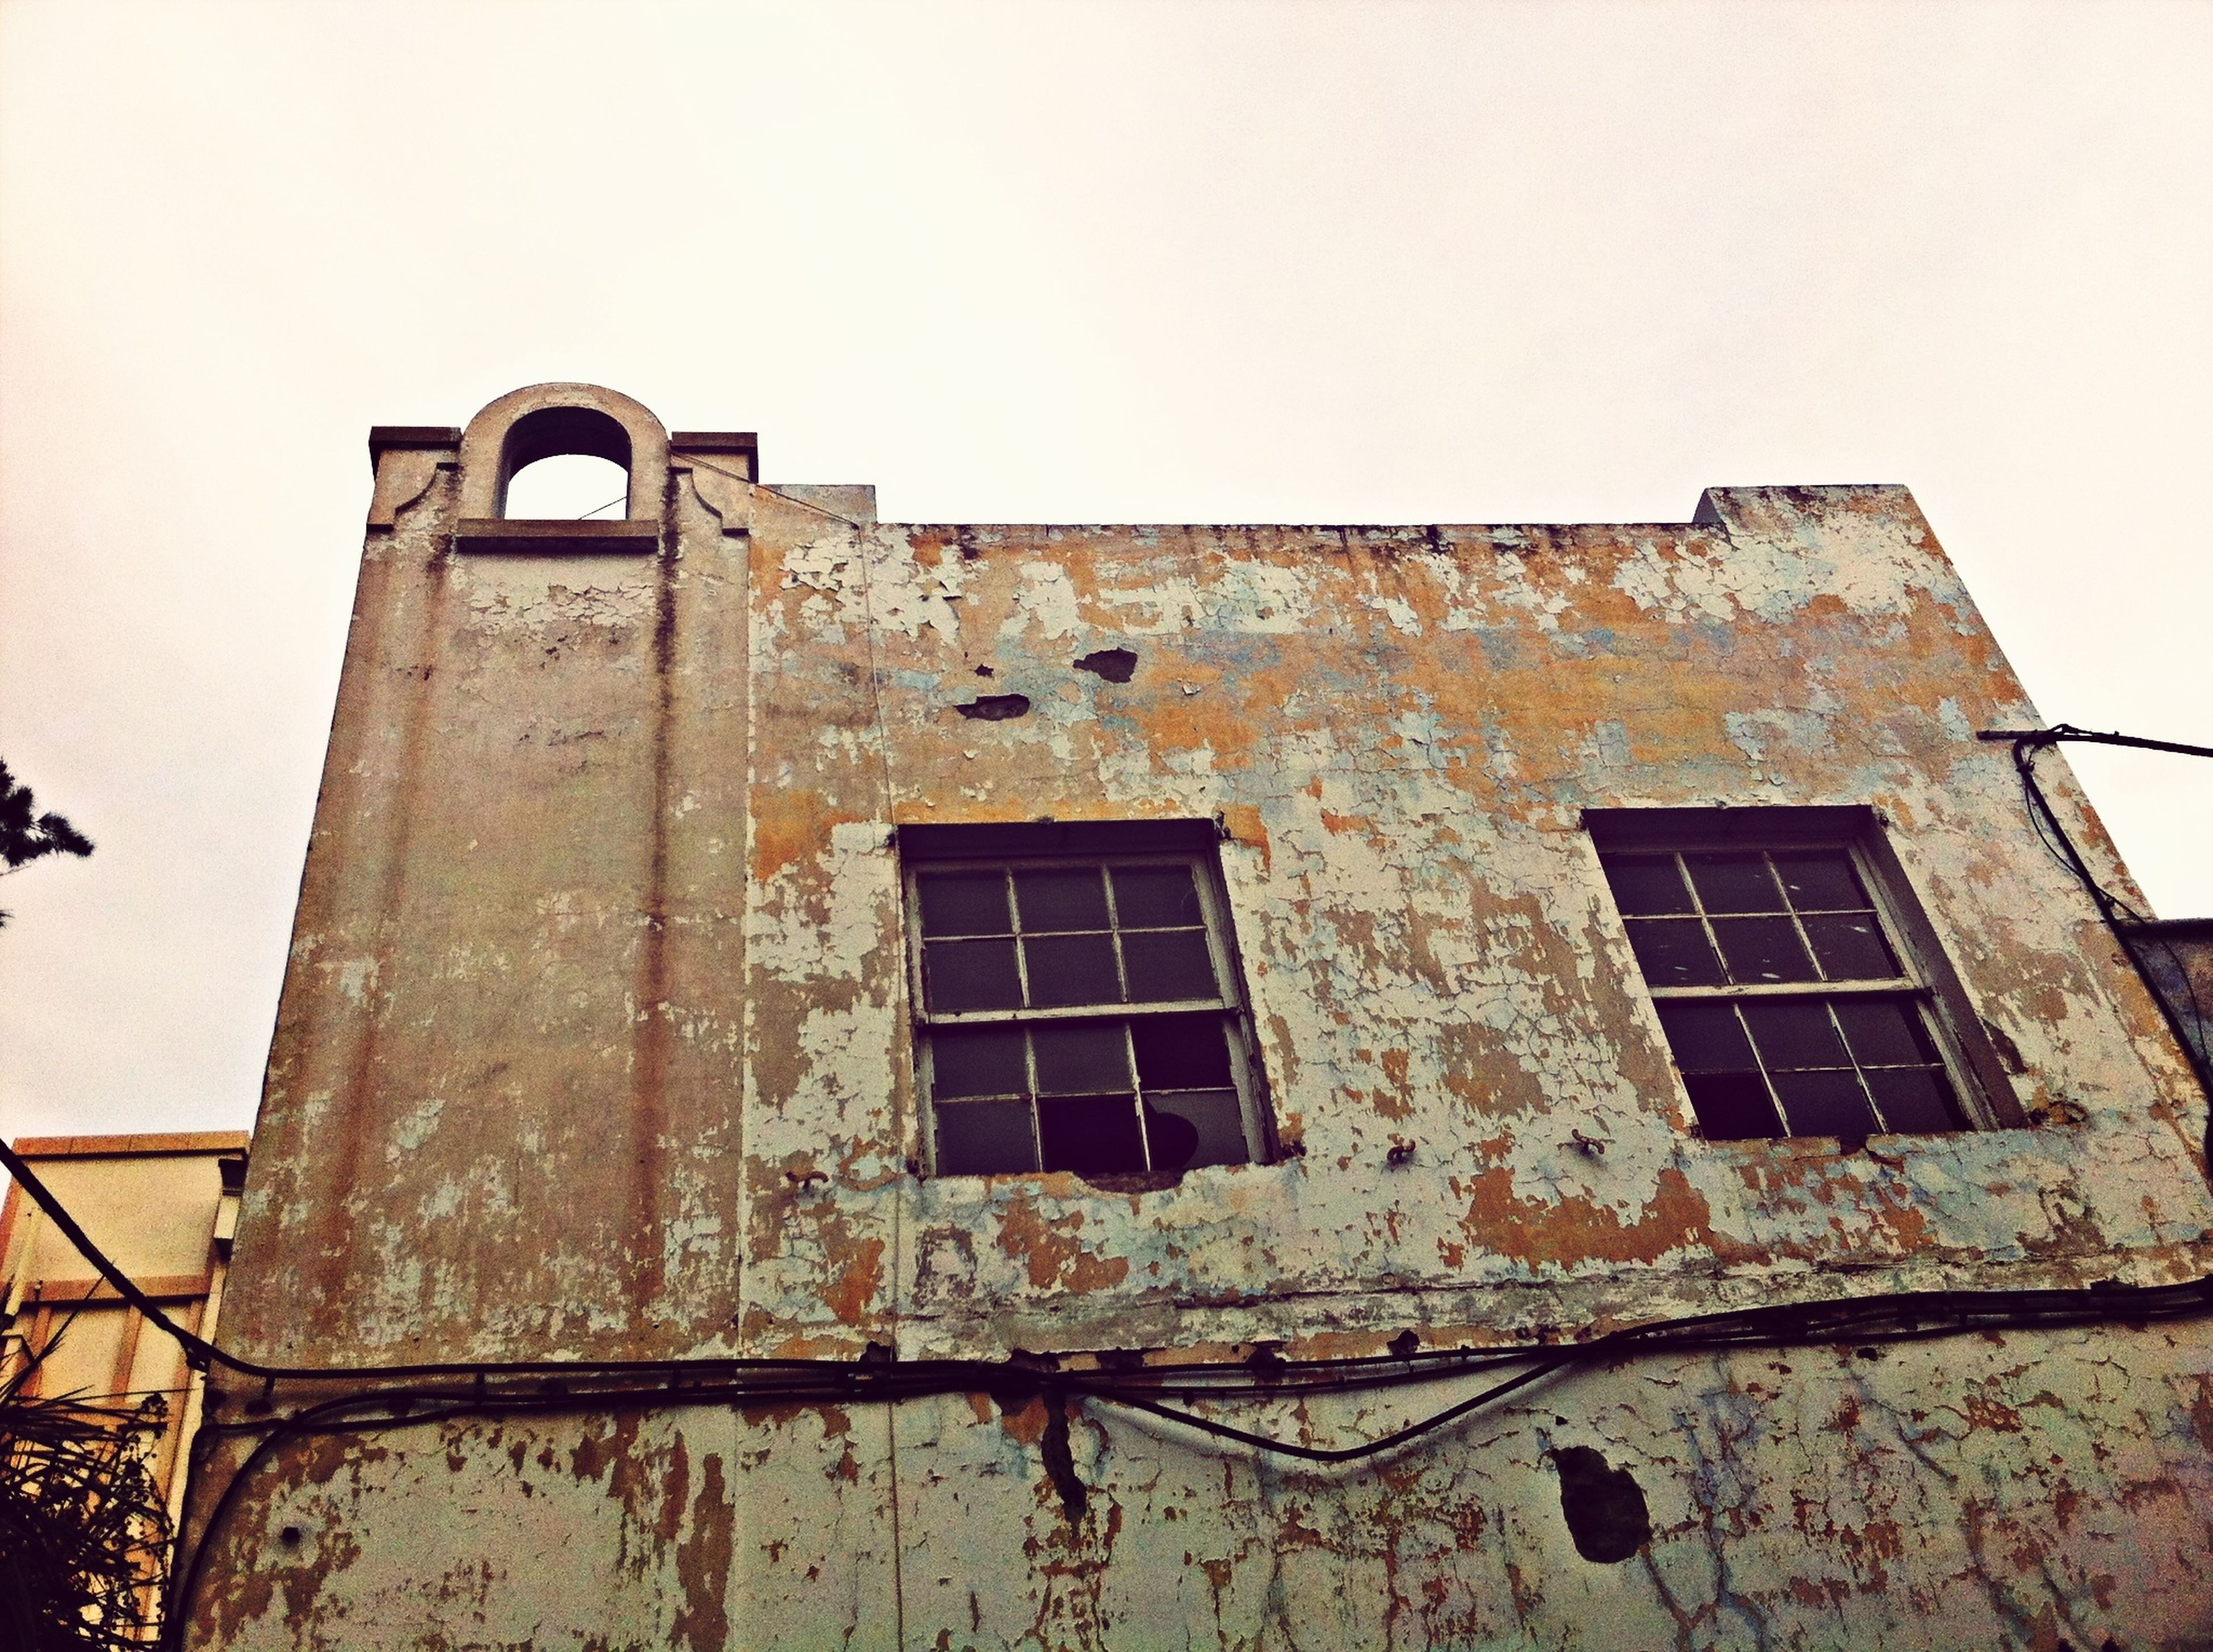 architecture, built structure, building exterior, window, low angle view, abandoned, old, damaged, obsolete, weathered, house, run-down, clear sky, deterioration, wall - building feature, bad condition, building, day, residential structure, outdoors